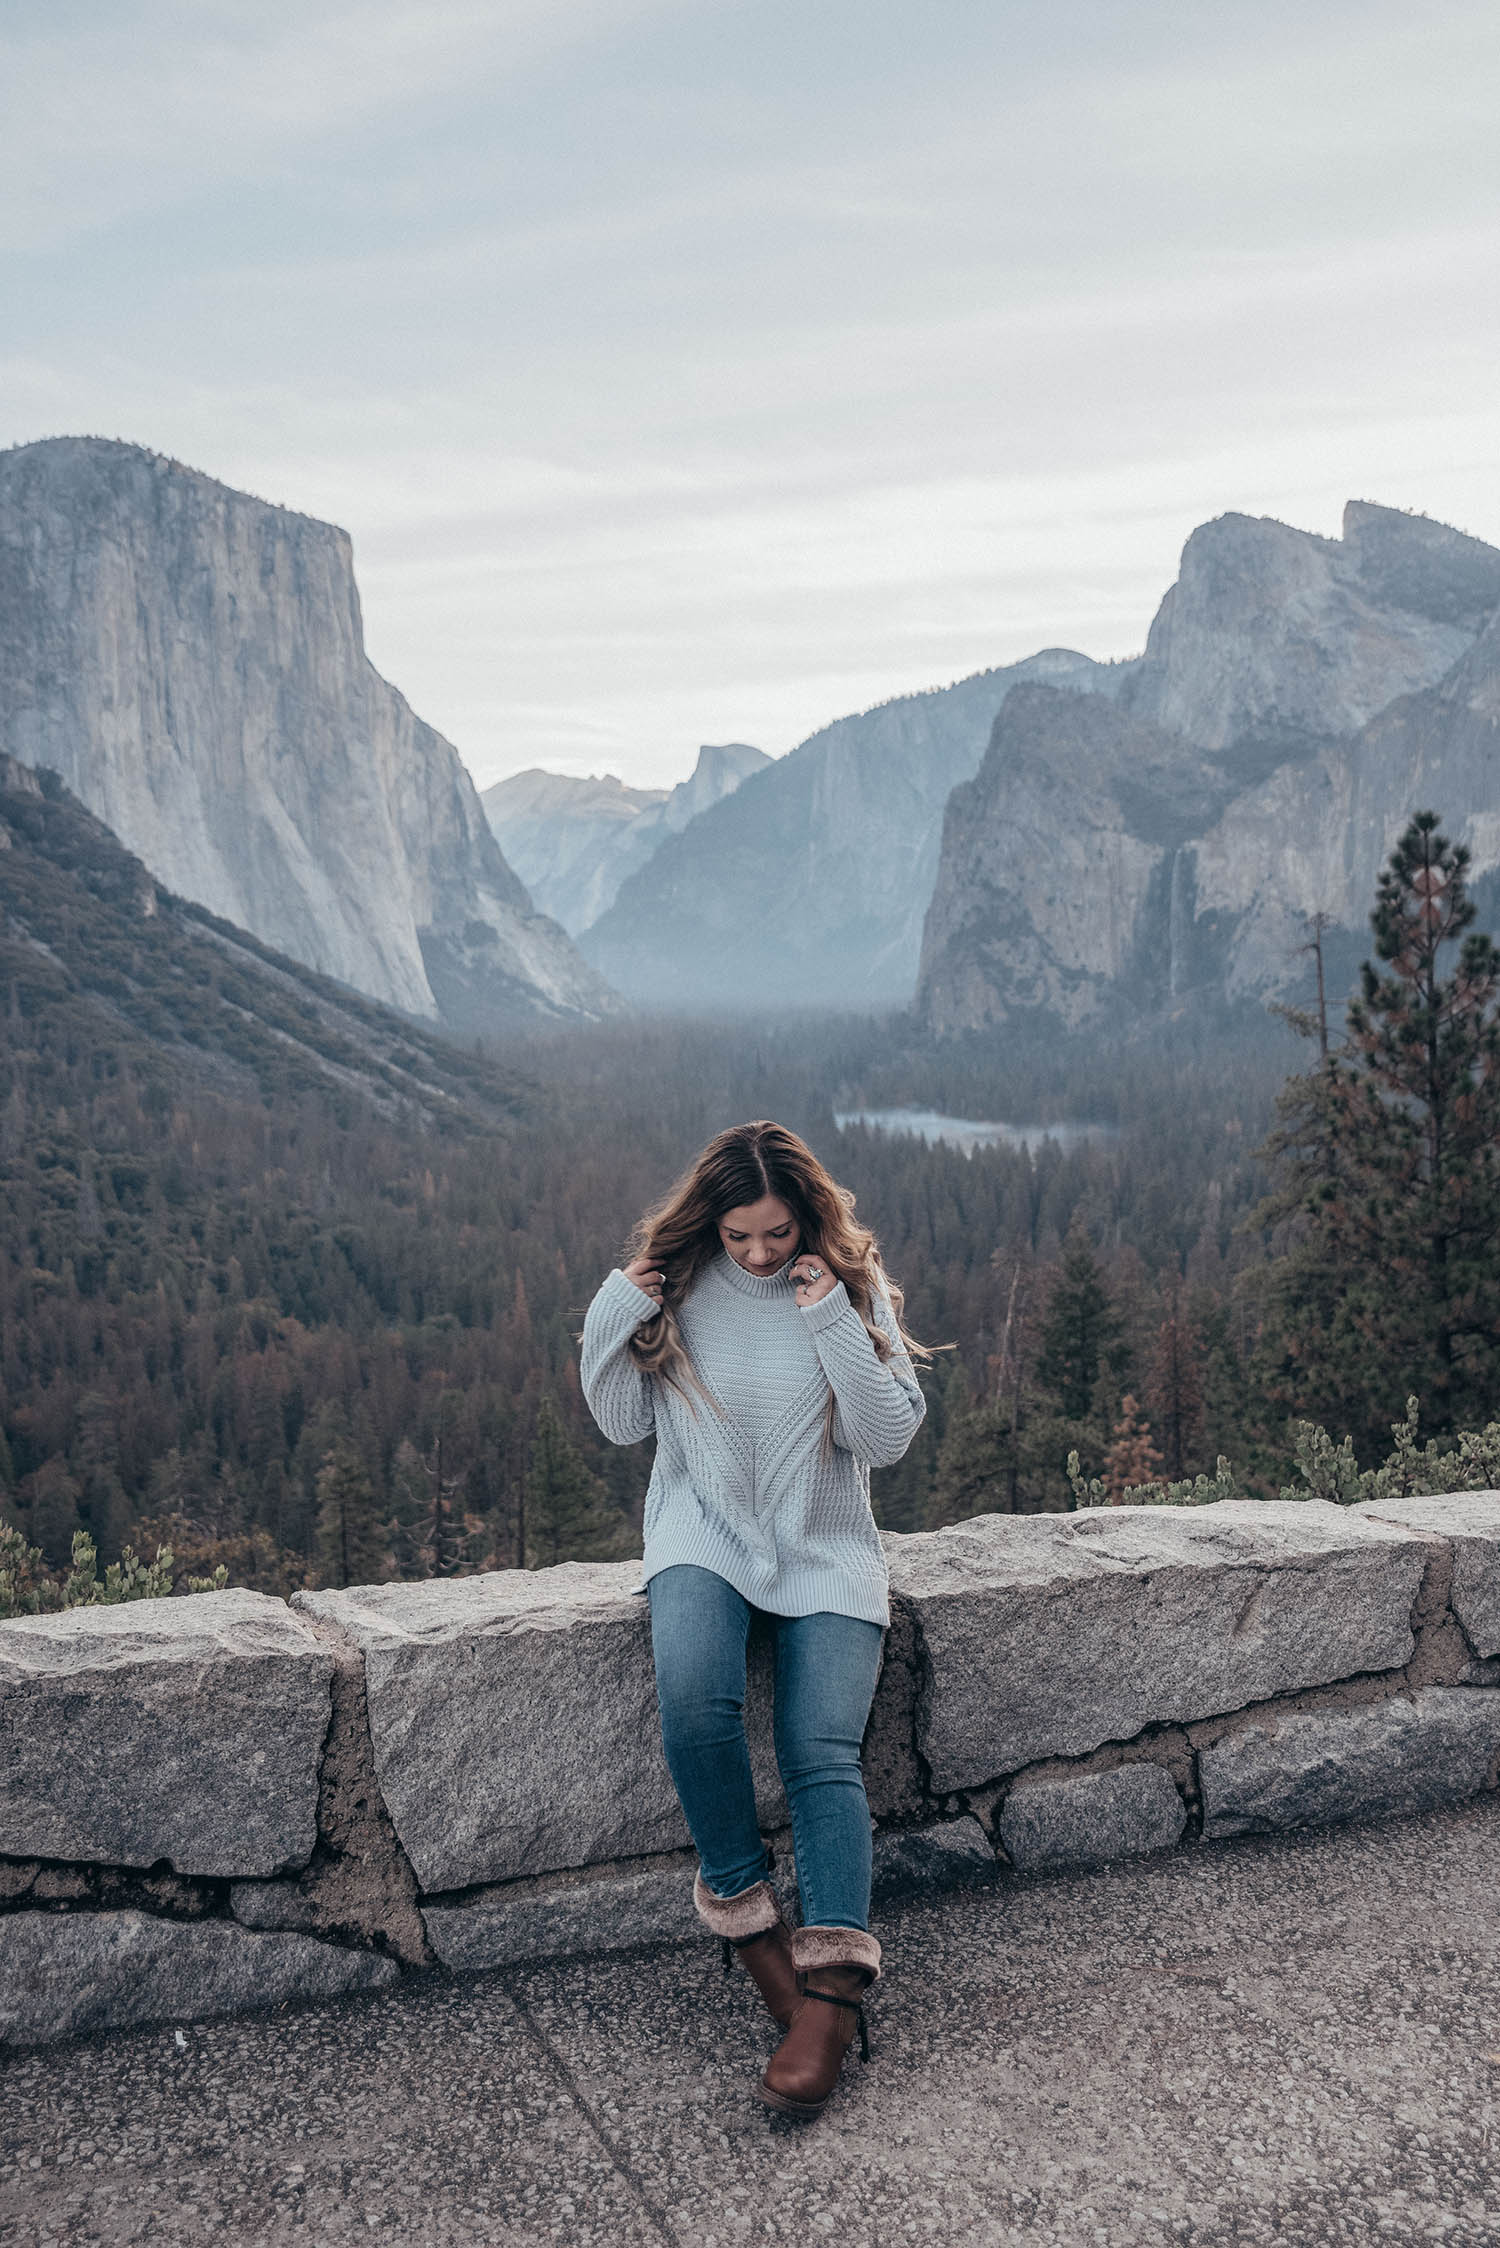 Cozy Knit Outfit in Yosemite National Park